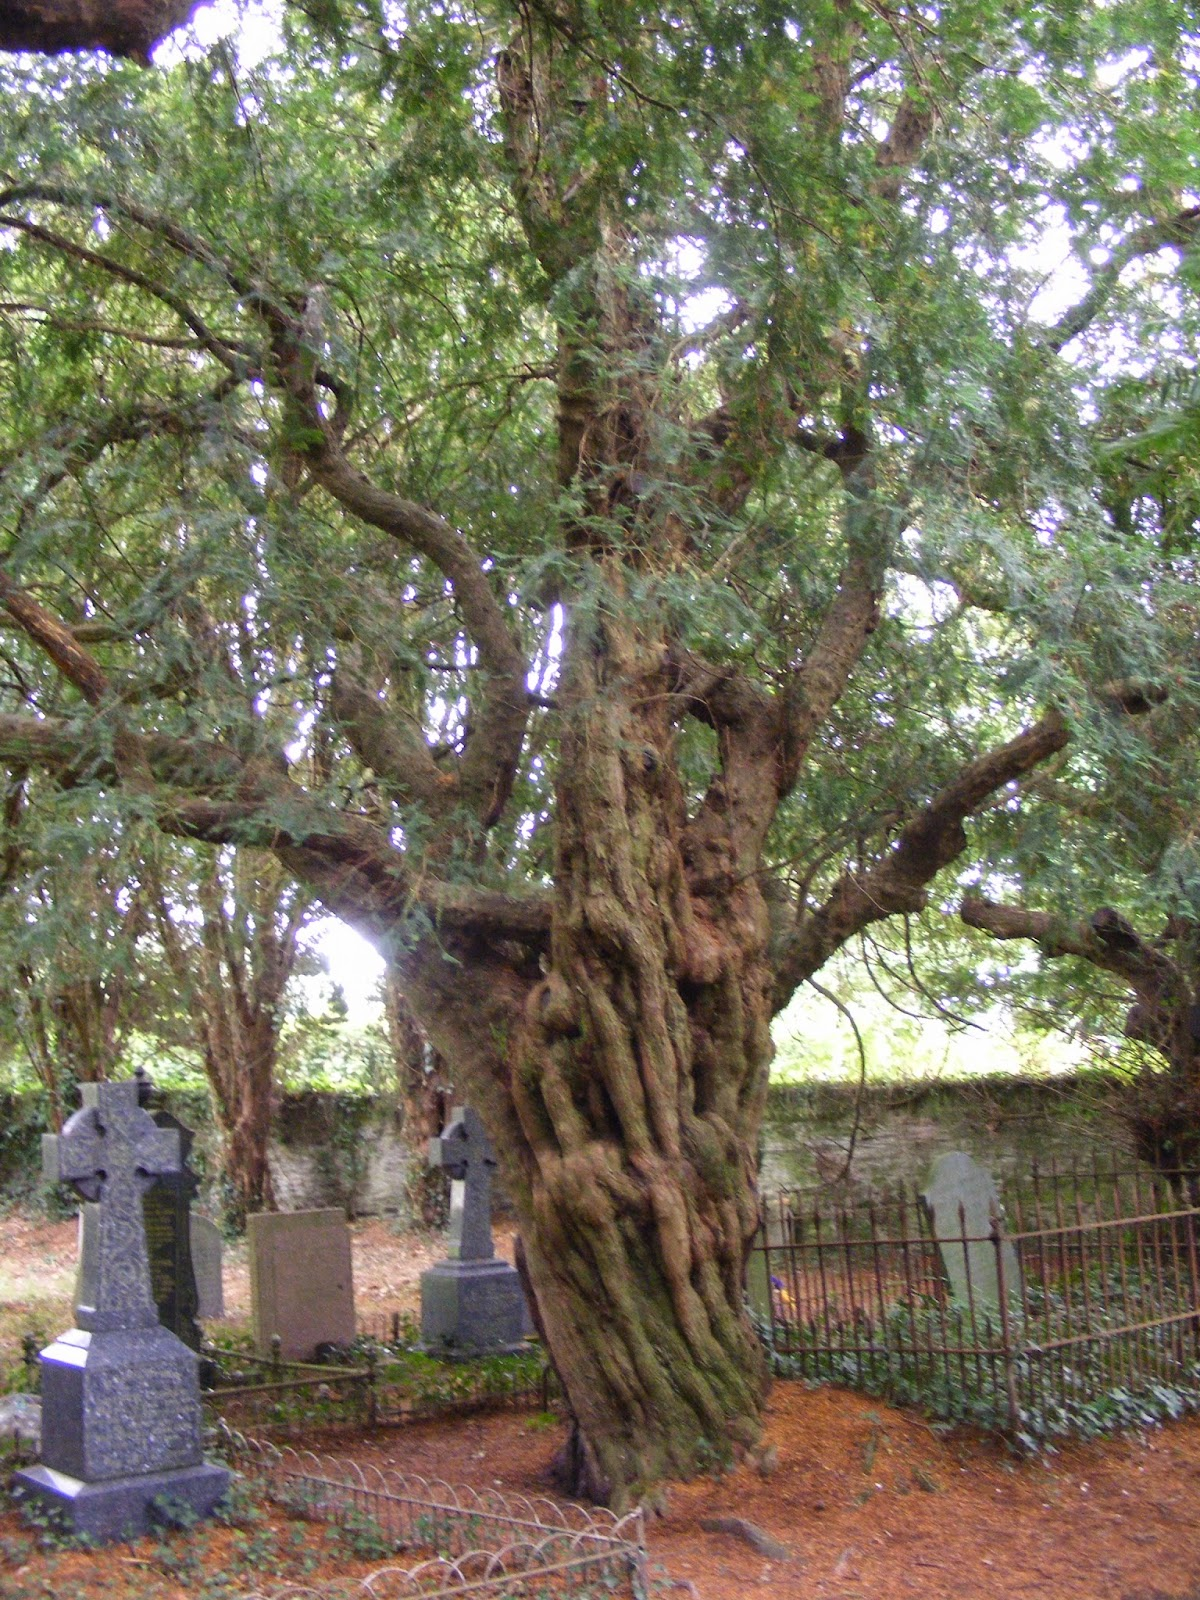 Which Trees Are Used To Make Paper: The Greenman: Great Trees Of Wales #2: Nevern's Bleeding Yew